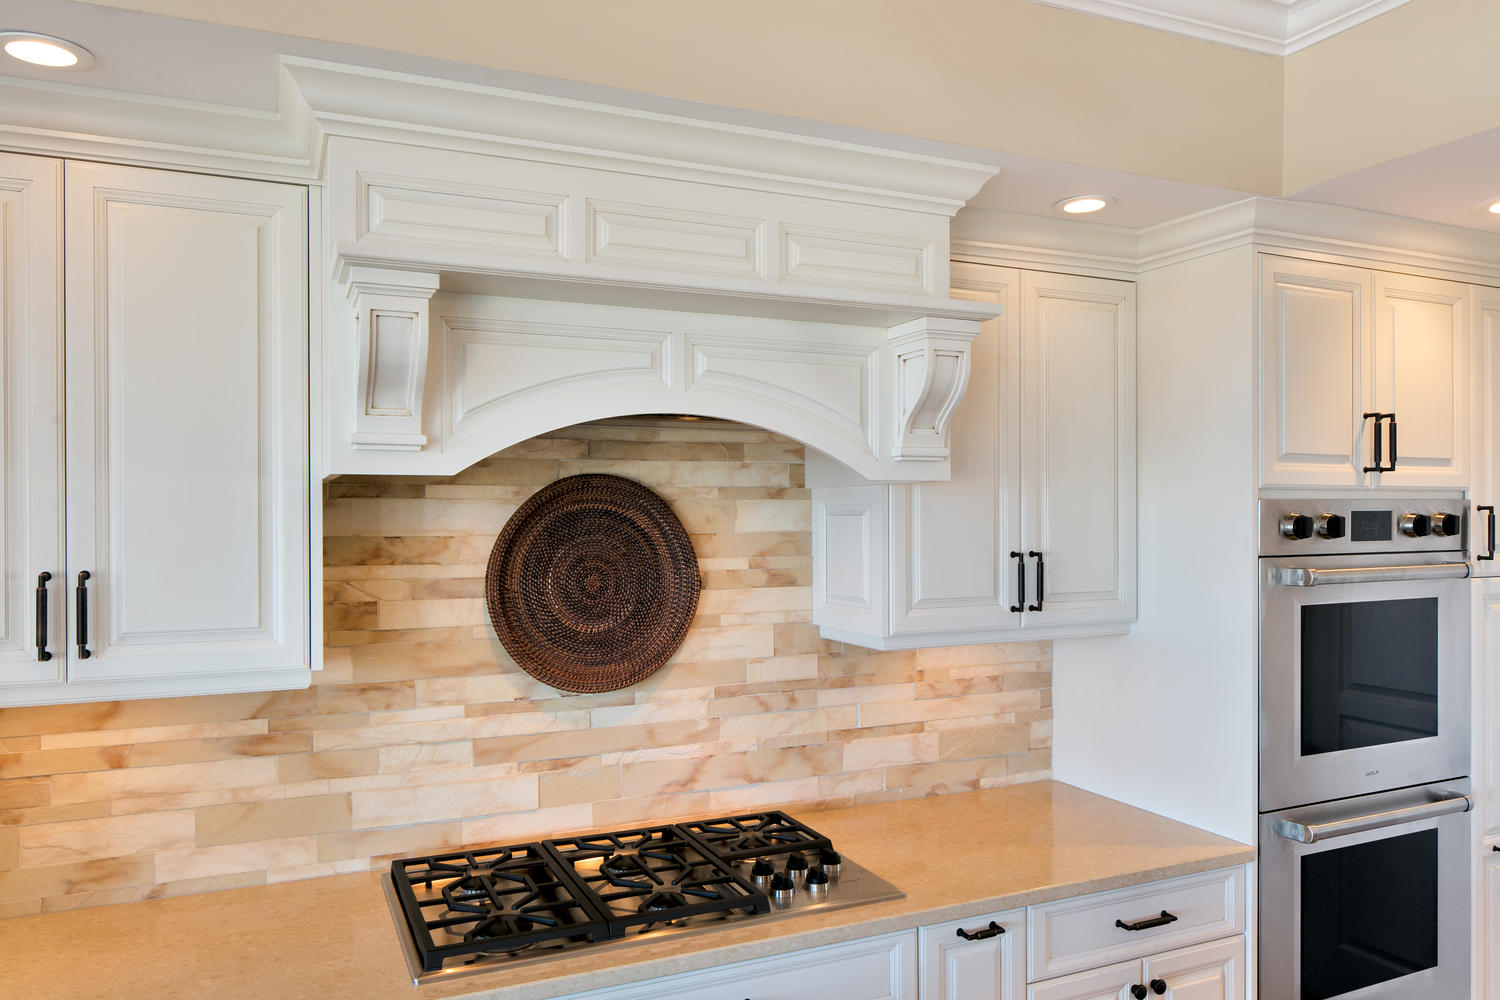 Kitchen Cabinets South Jersey Great Kitchen Design Spring Lake New Jersey By Design Line